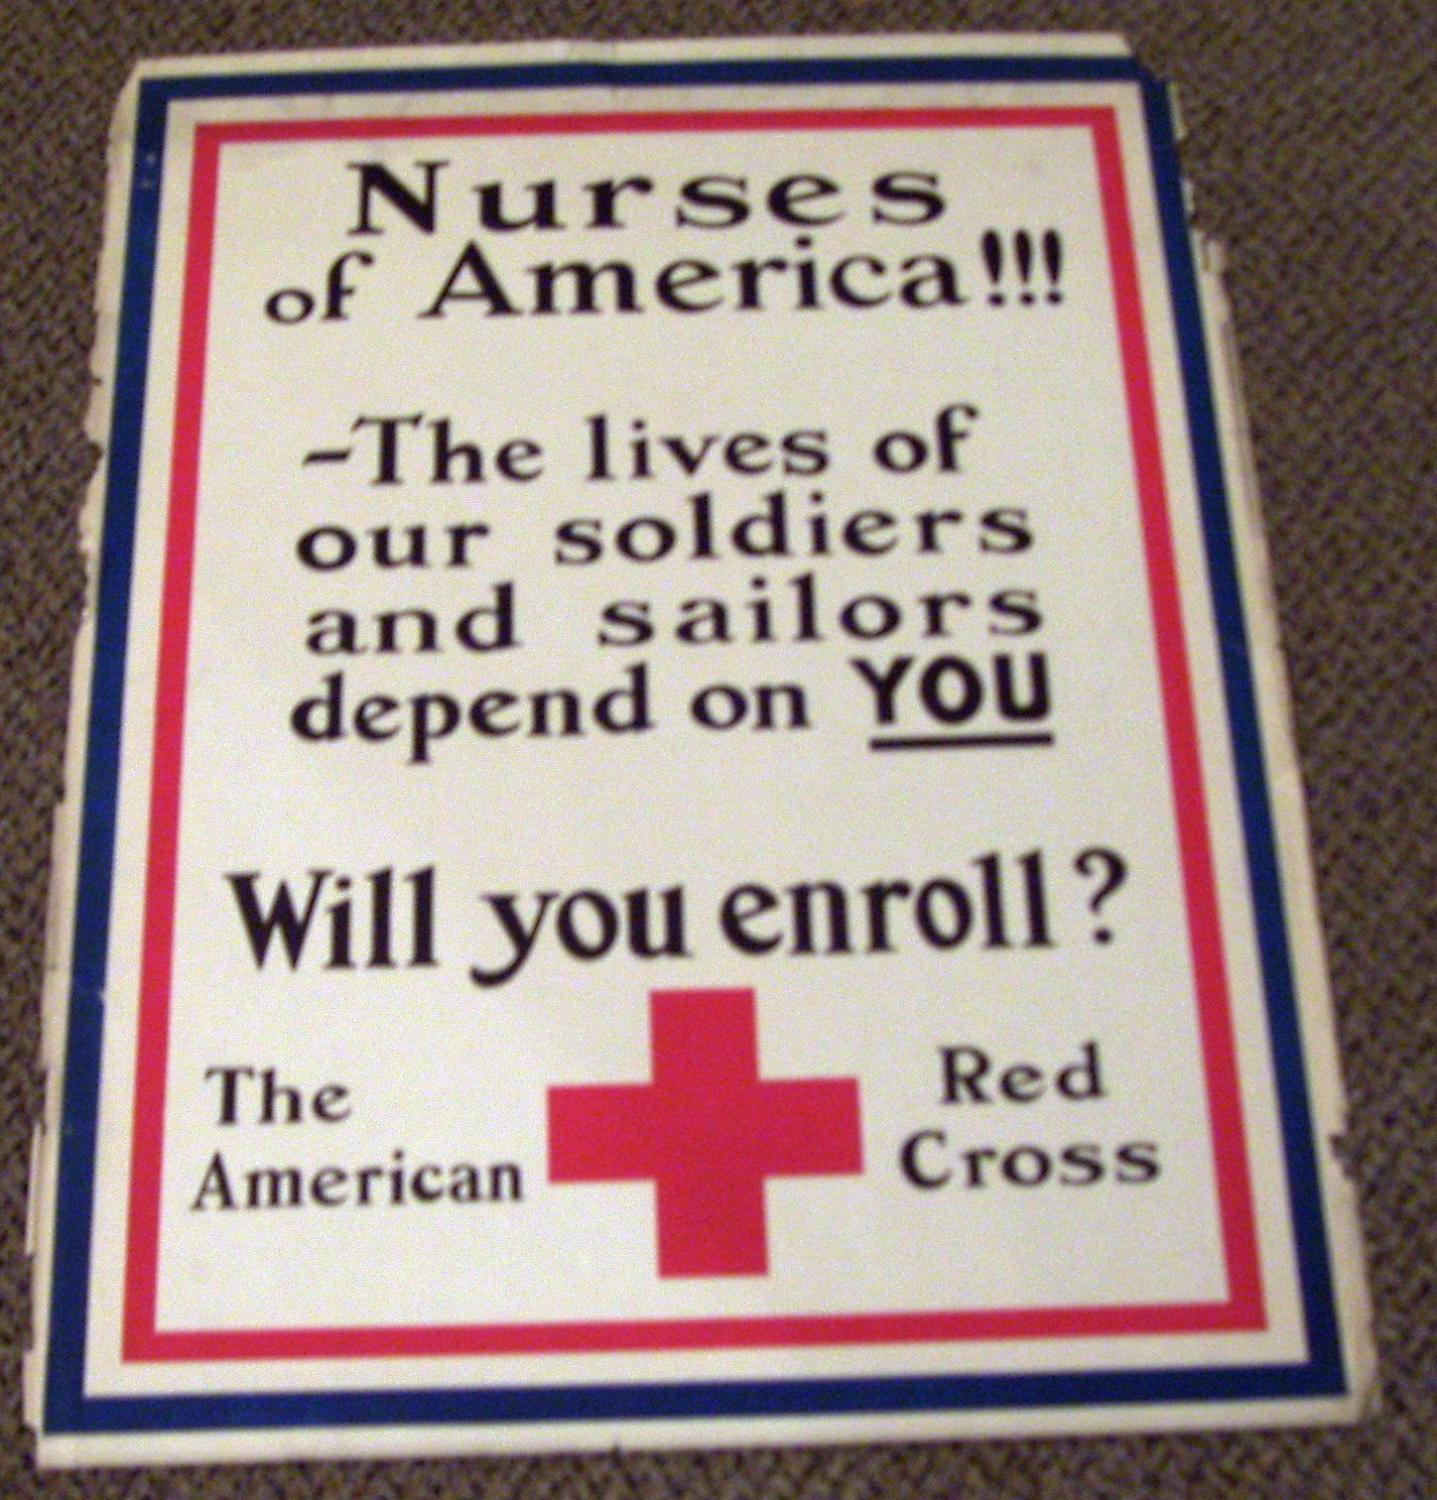 Nurses of America: The Lives of Our Soldiers and Sailors Depend on You Good 21 in. x 28 in. A poster with text only encouraging enlistment. Wear and tears to edges.